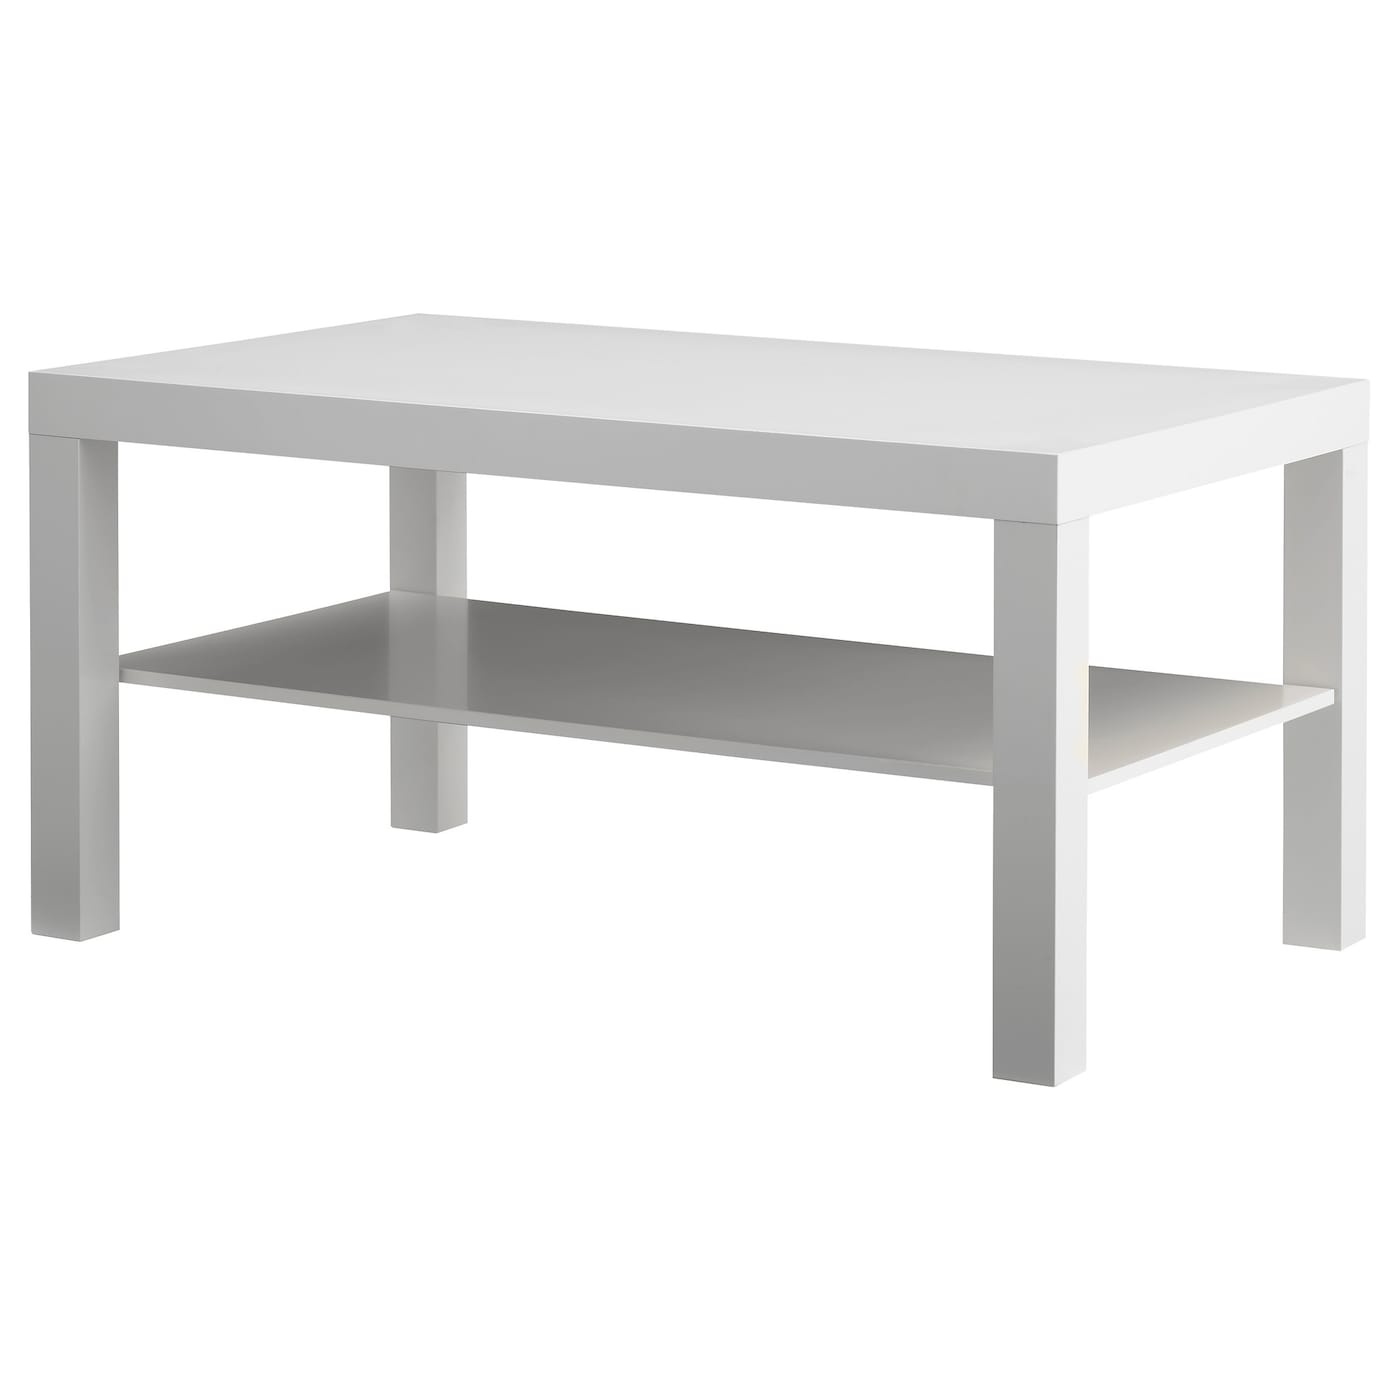 Lack coffee table white 90x55 cm ikea - Ikea table basse noir ...